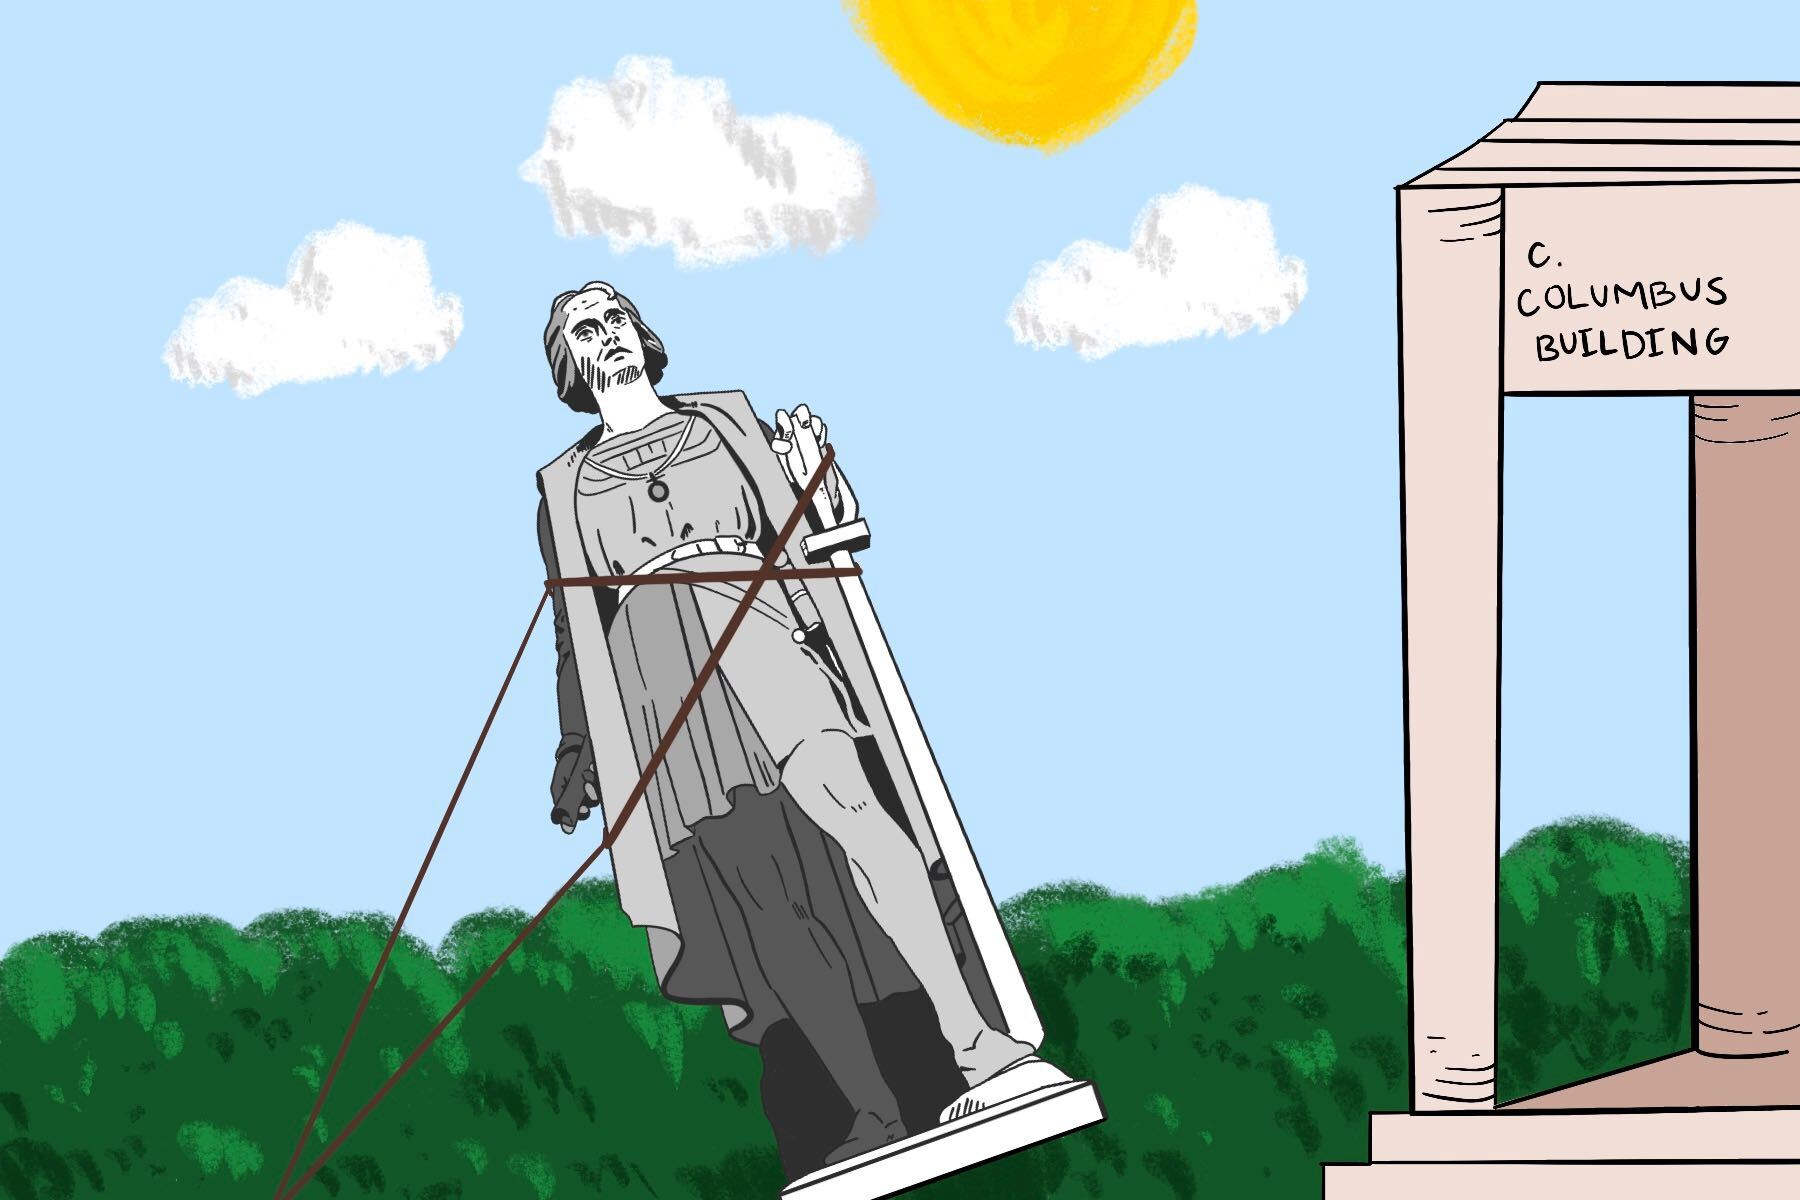 In an article about removing racist statues, an illustration by Ash Ramirez of a statue removal